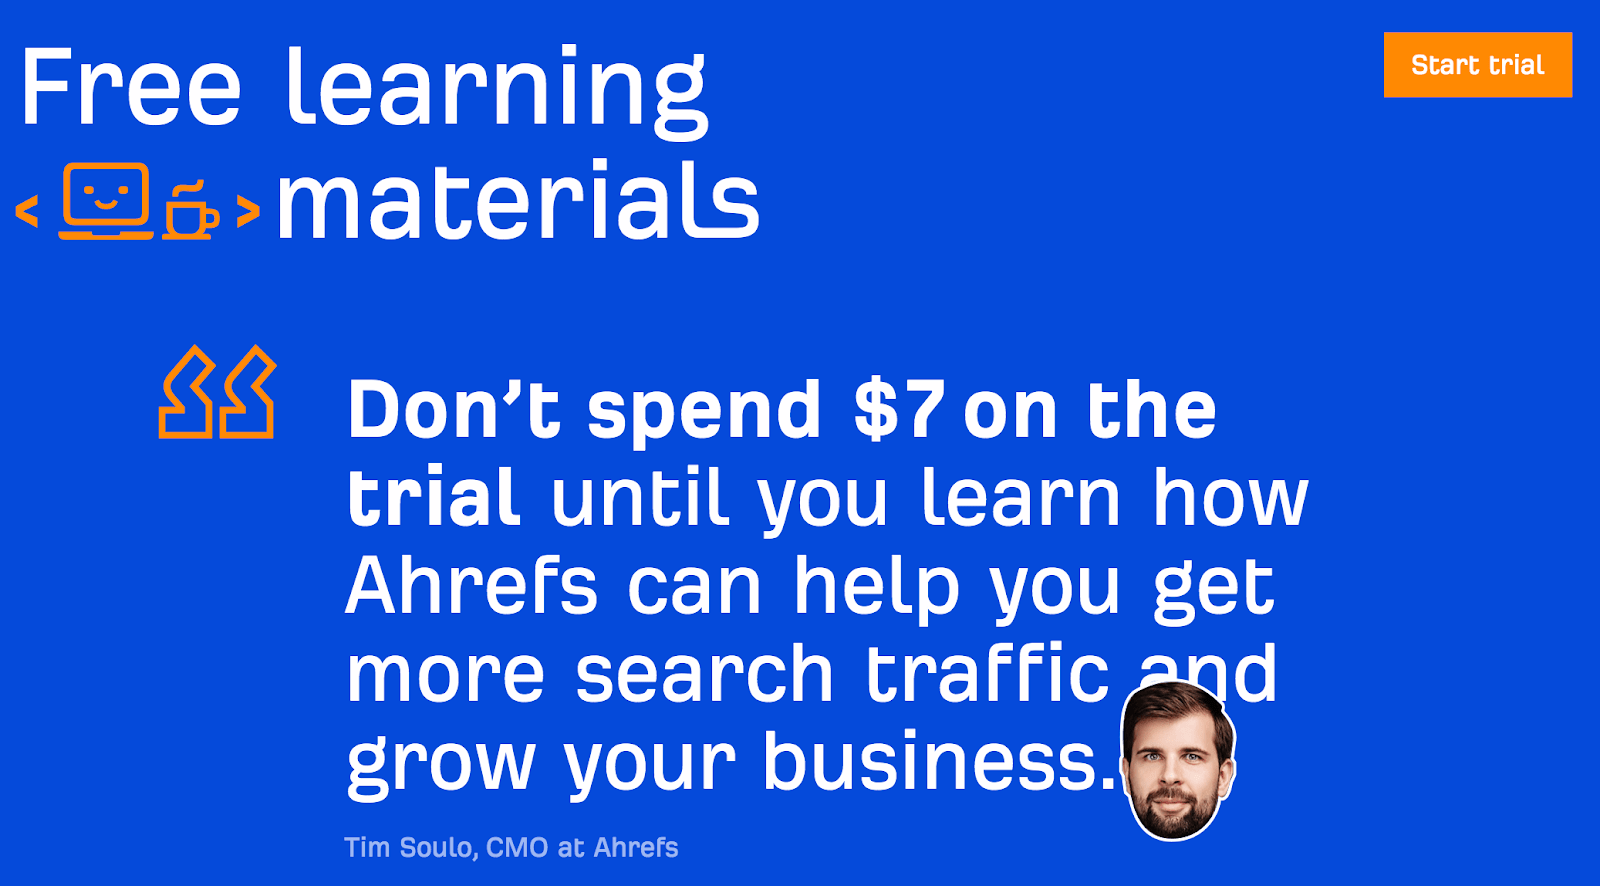 ahrefs homepage tim quote